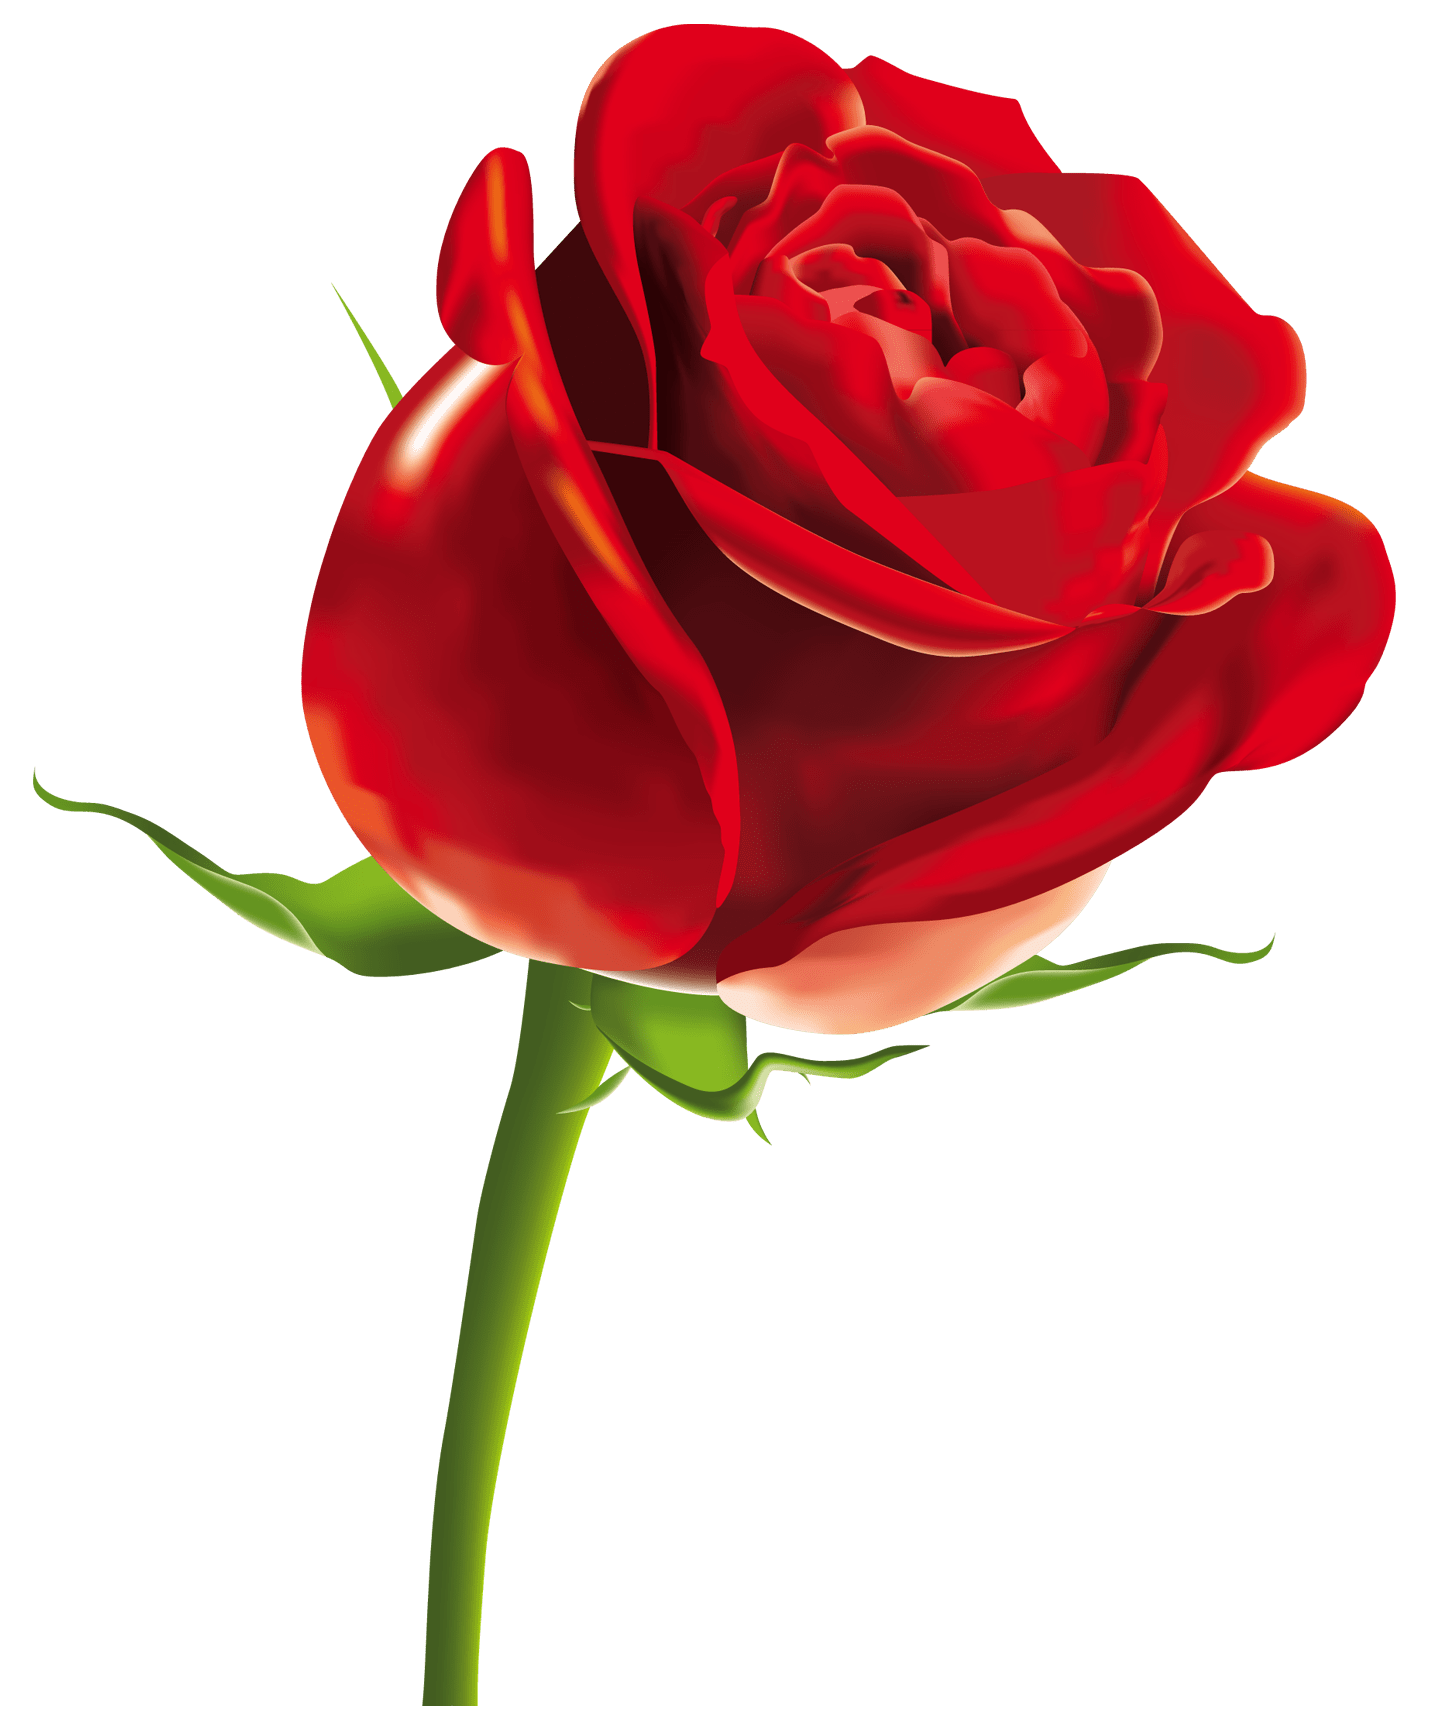 red rose png clipart